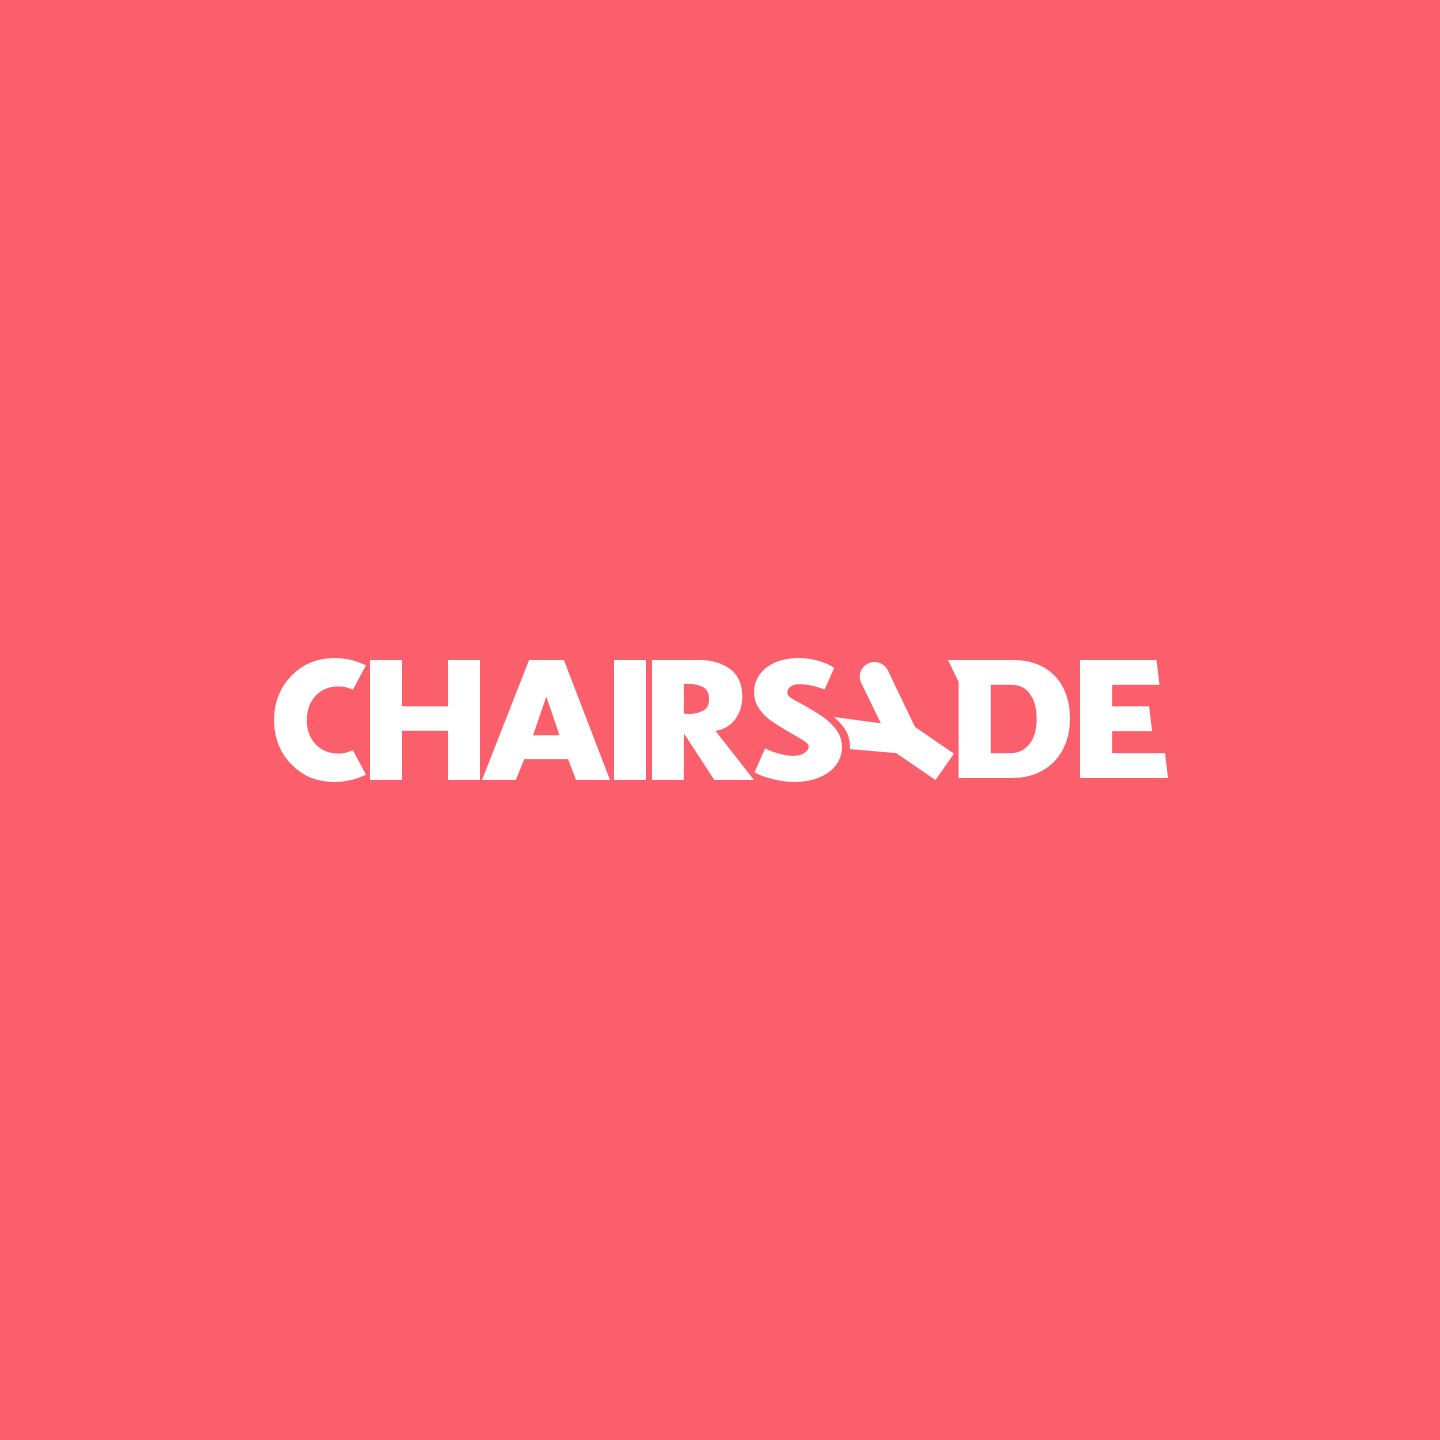 Chairsyde